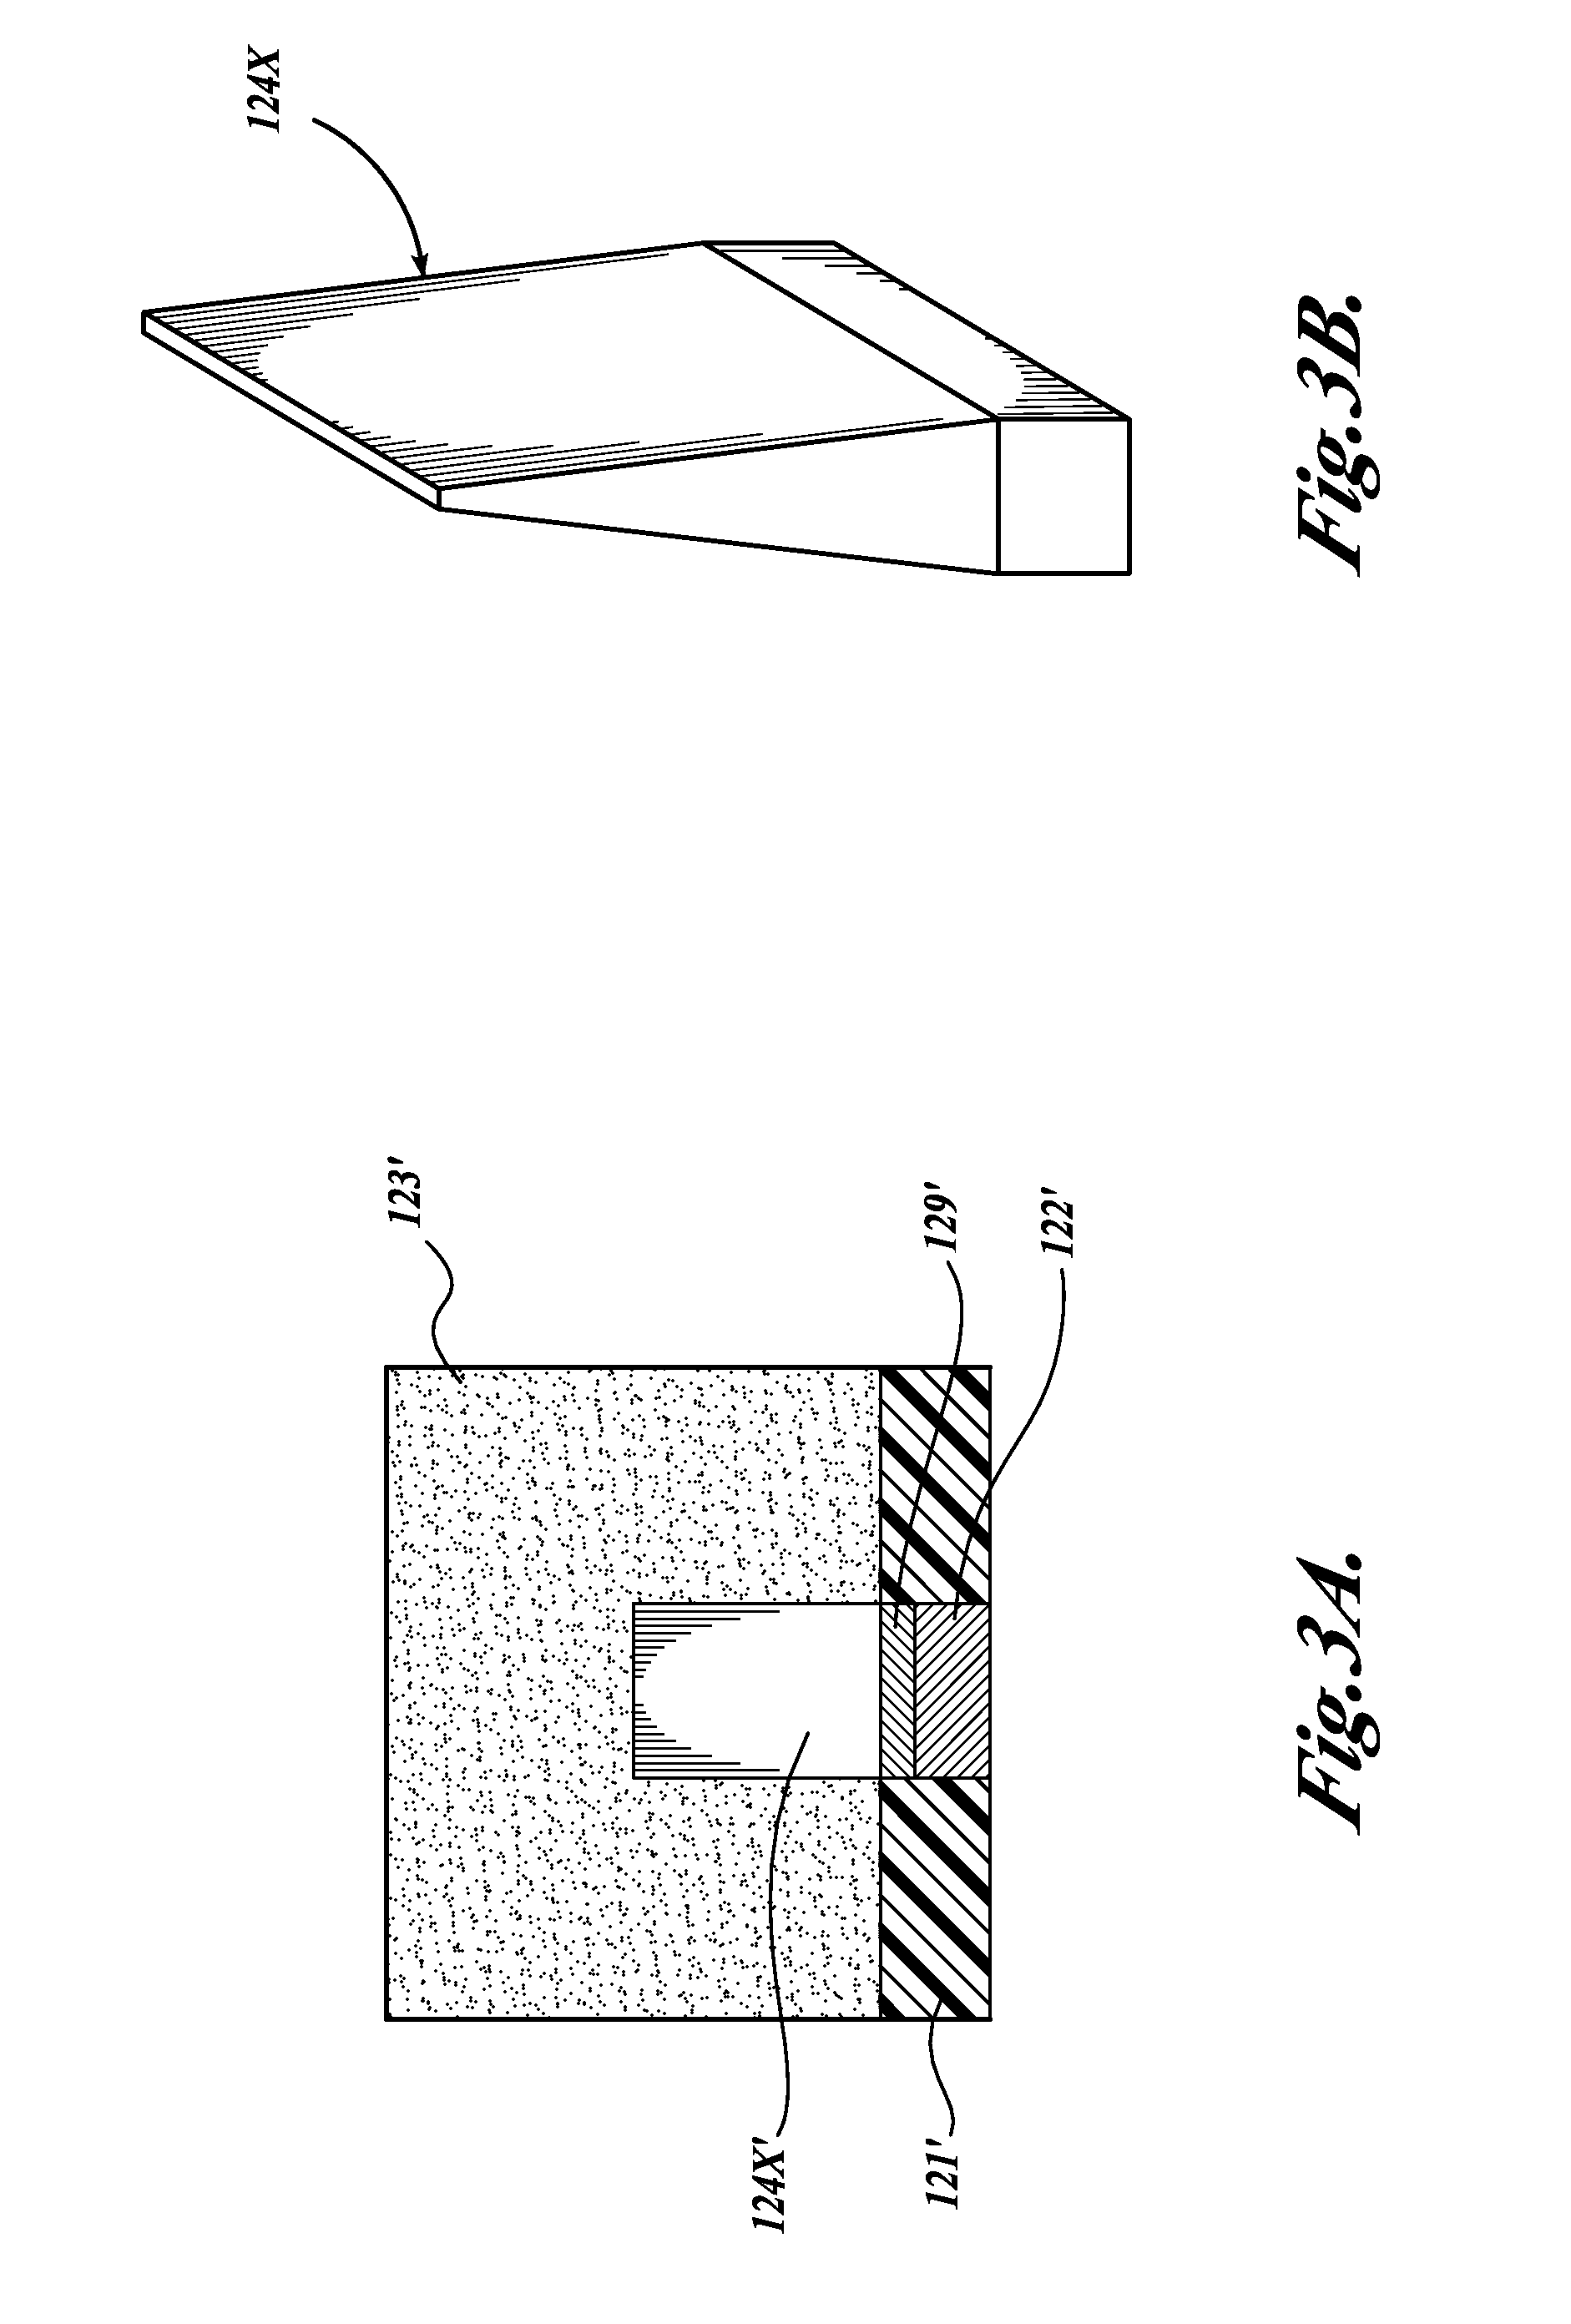 Patent Us20110159461 Toothbrush Employing Acoustic Waveguide Dc Motor Brushes Replacement Besides Bodine Wiring Diagram Drawing